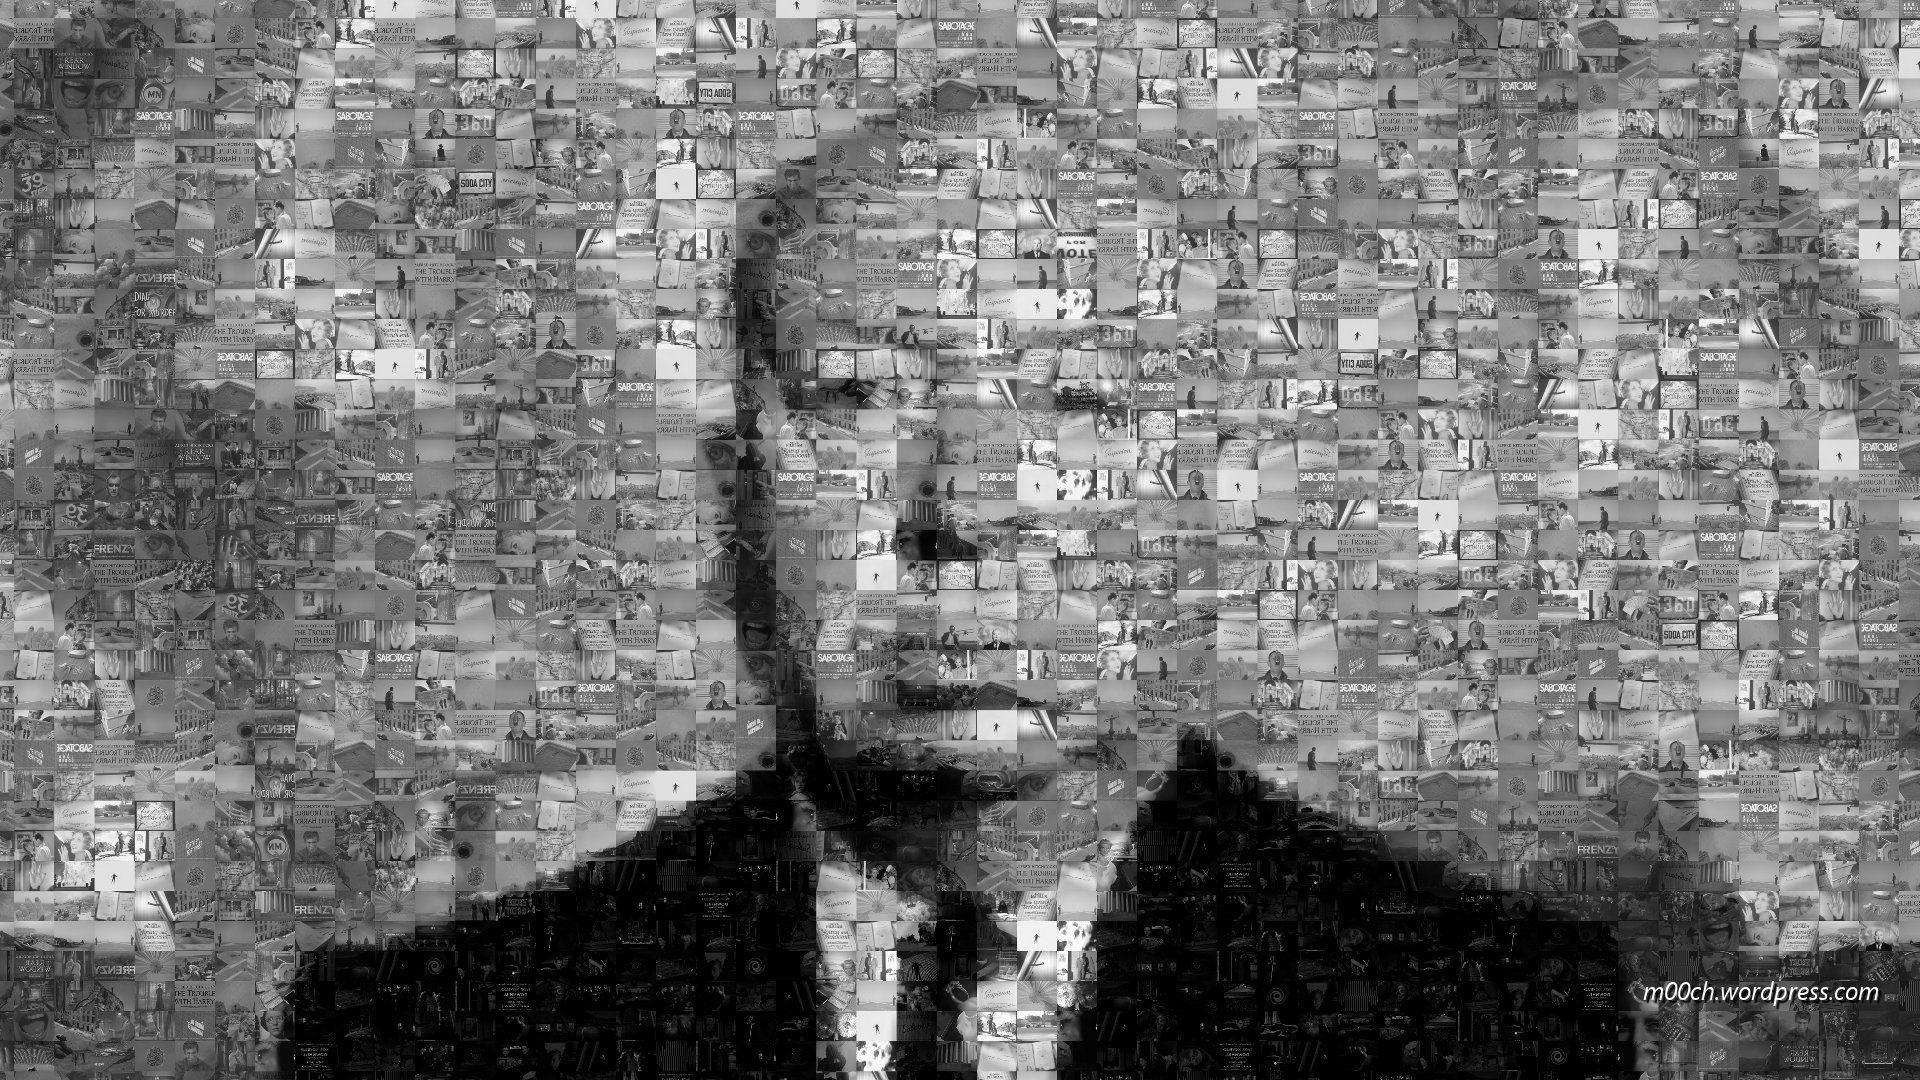 Alfred Hitchcock Wallpapers - Wallpaper Cave